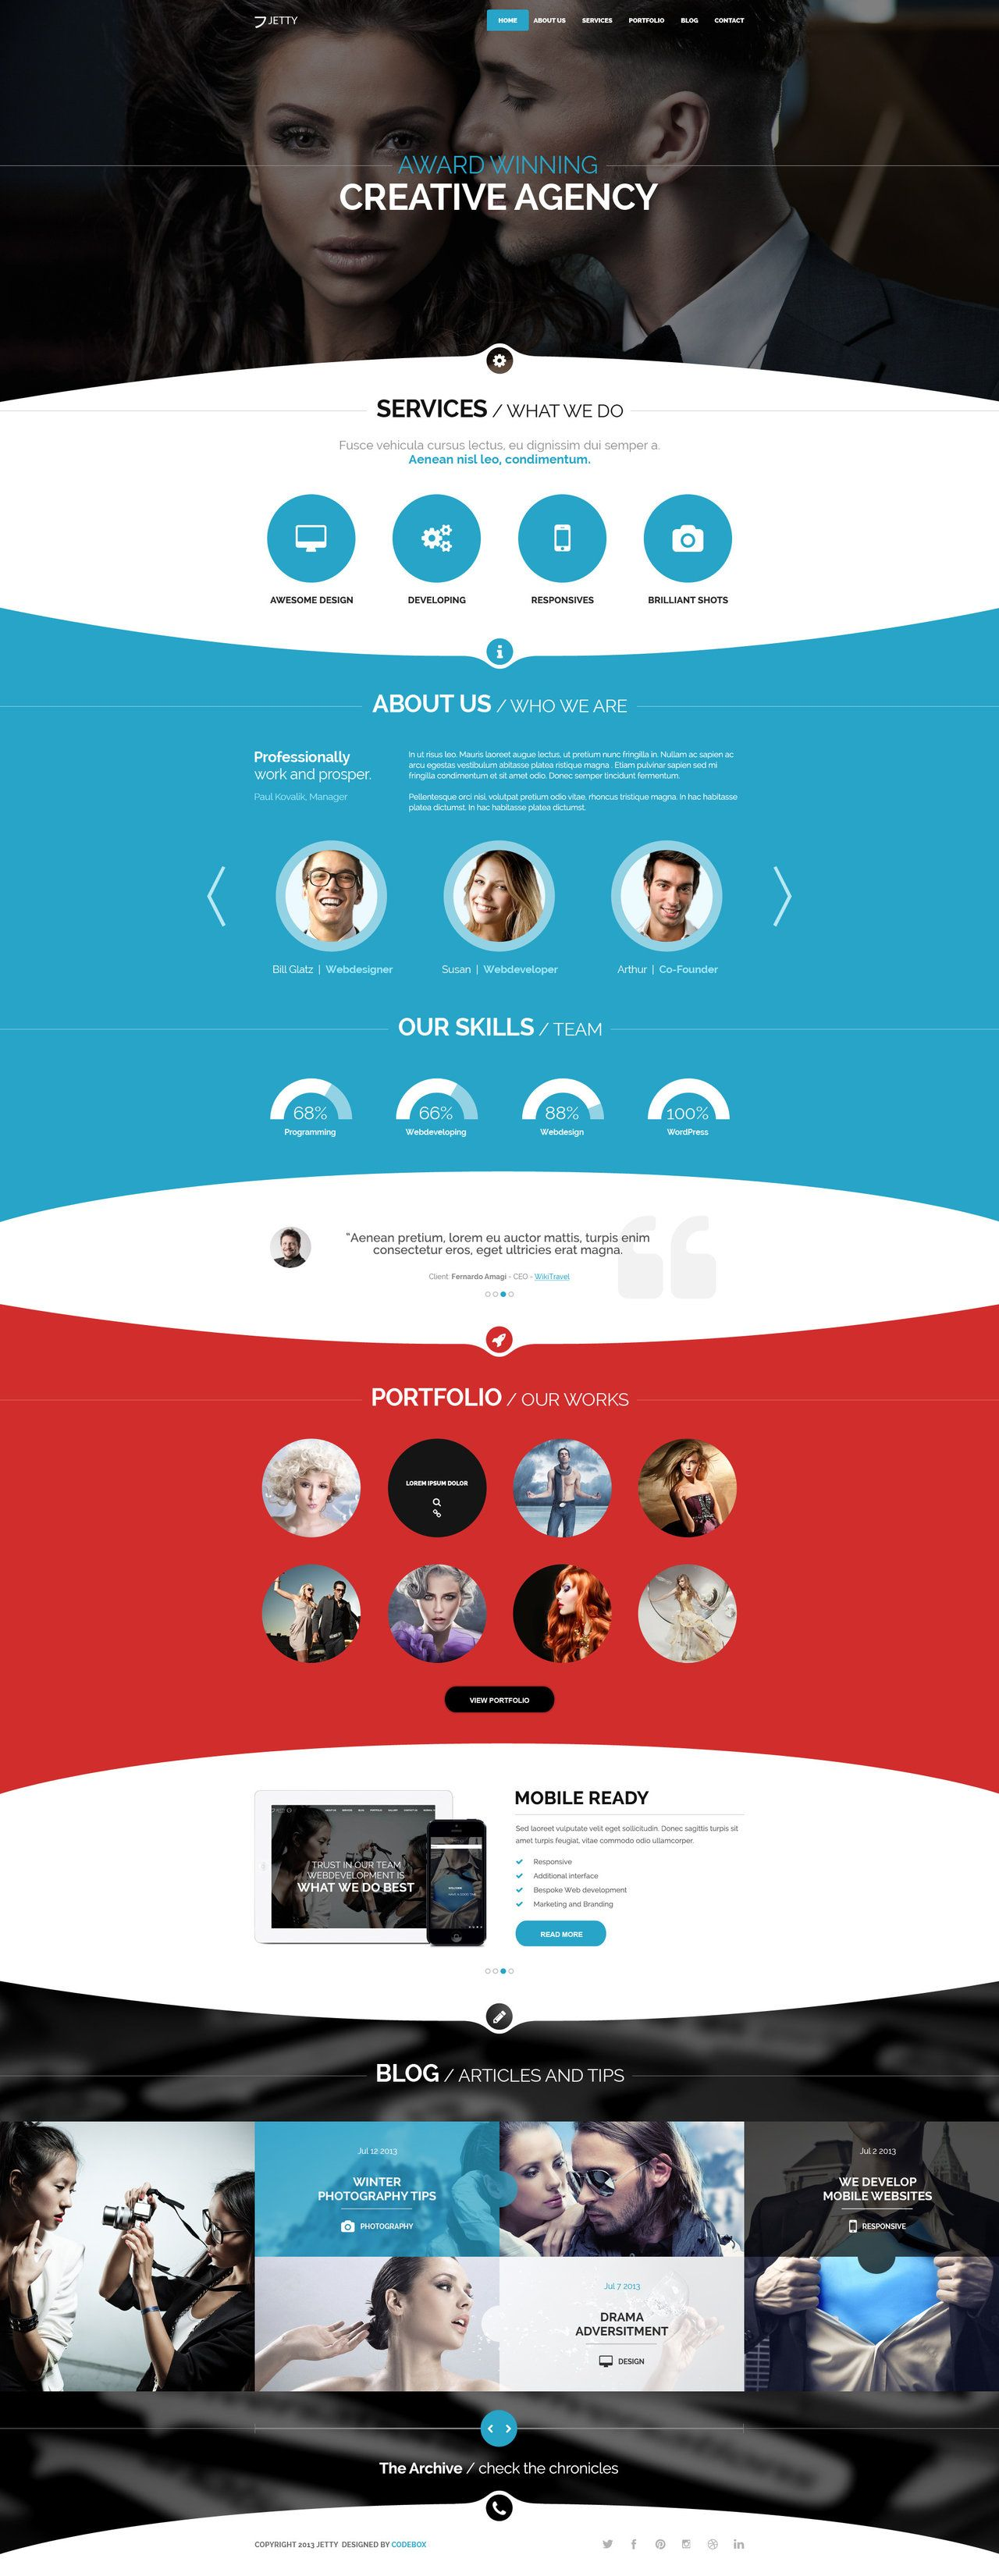 Jetty PSD Template by webdesigngeek.deviantart.com on @deviantART